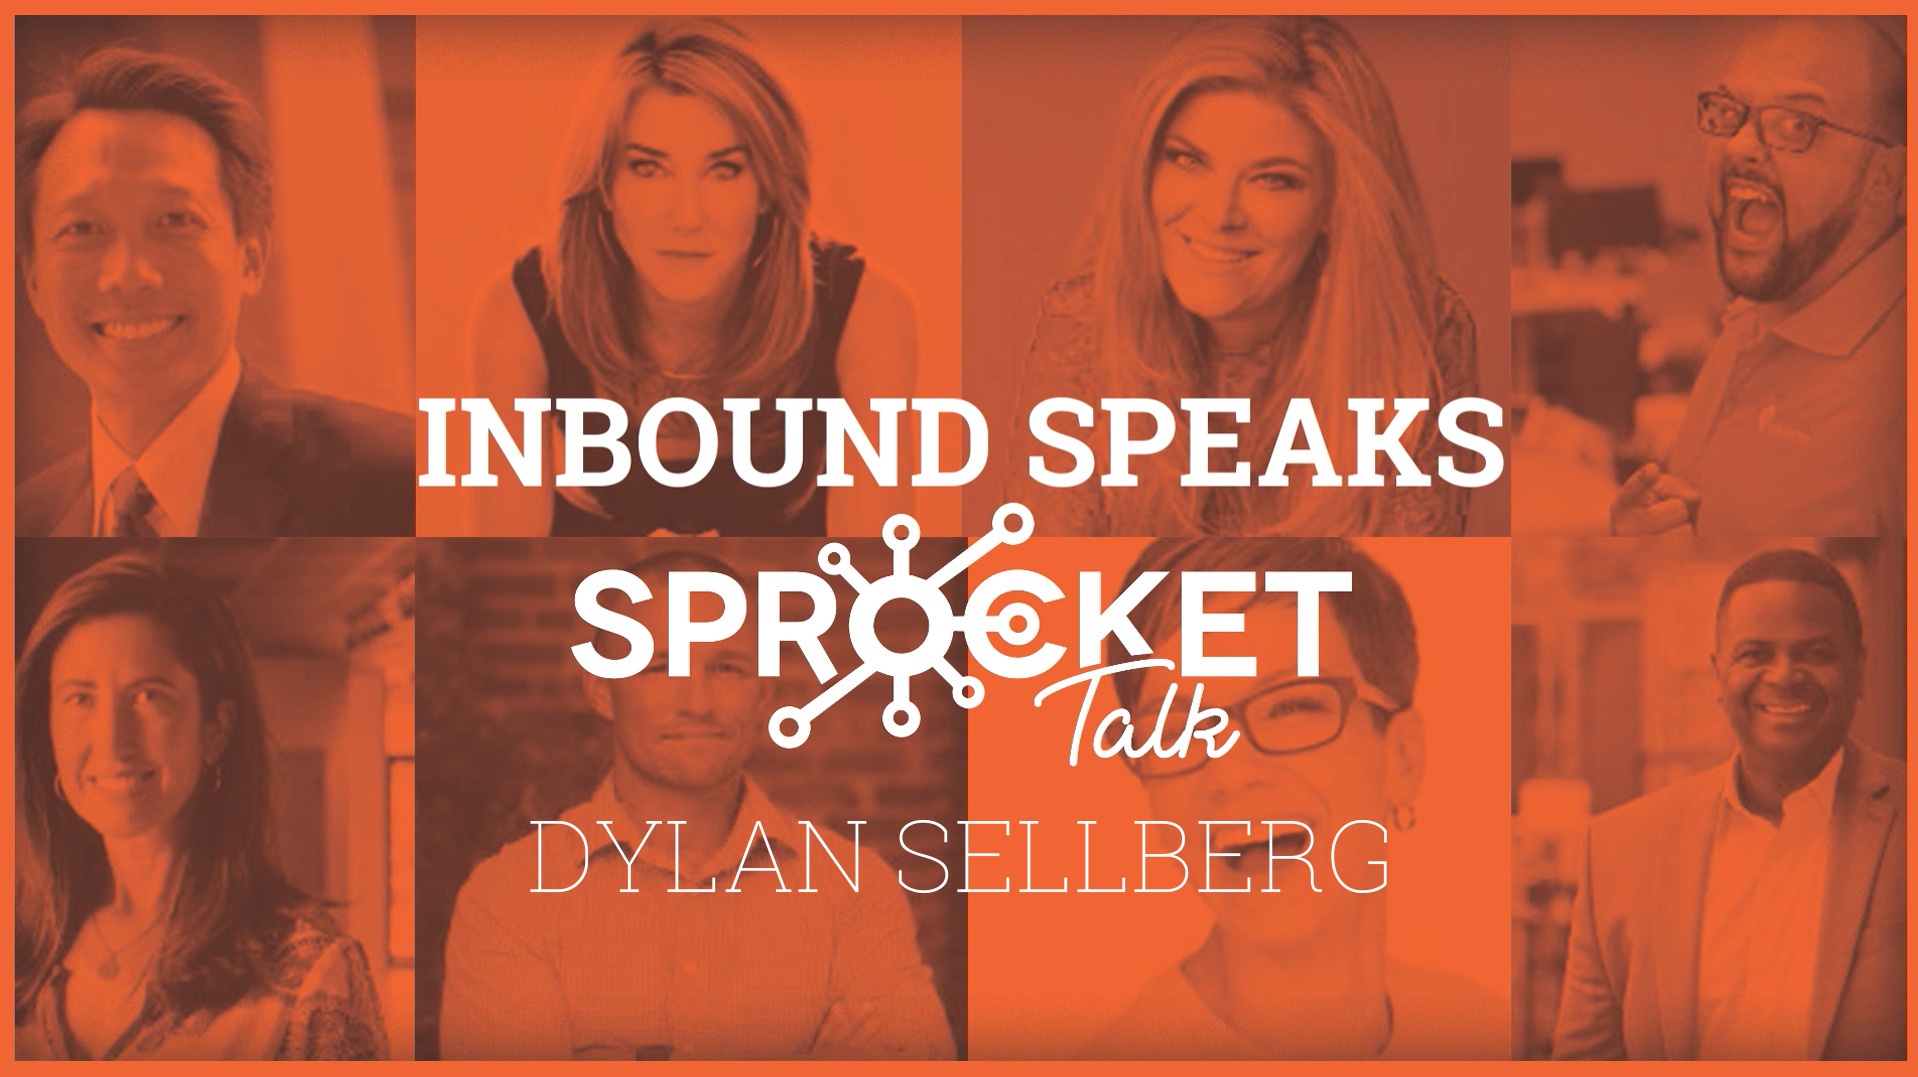 Dylan Sellberg How to Think Like a Product Manager to Supercharge Your Growth as a Marketer #Inbound19